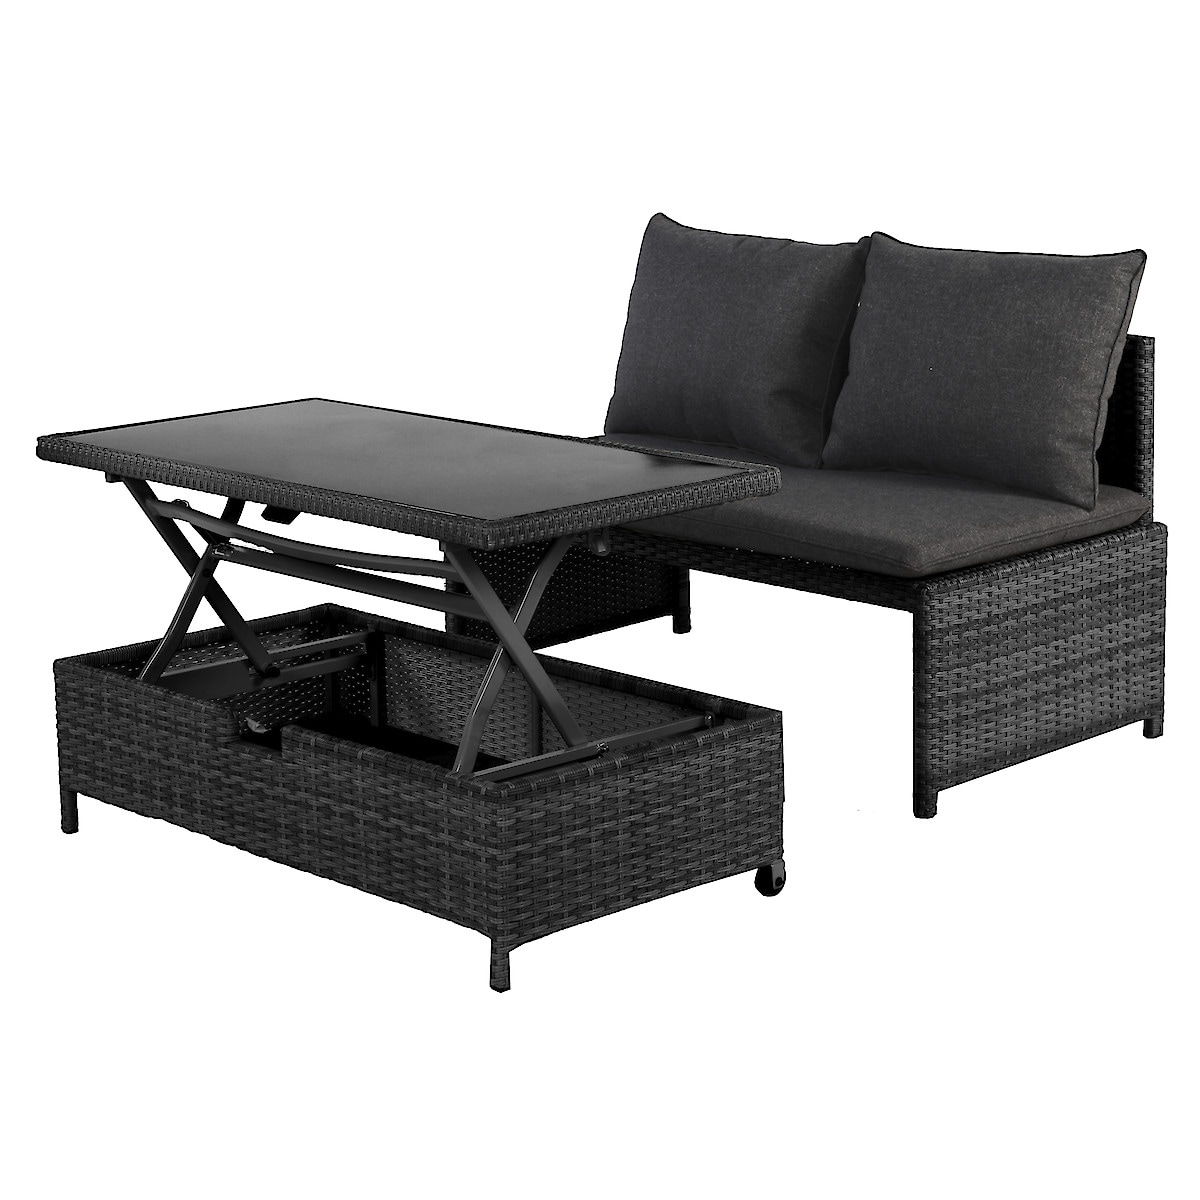 Garden Furniture Set, Sofa and Table